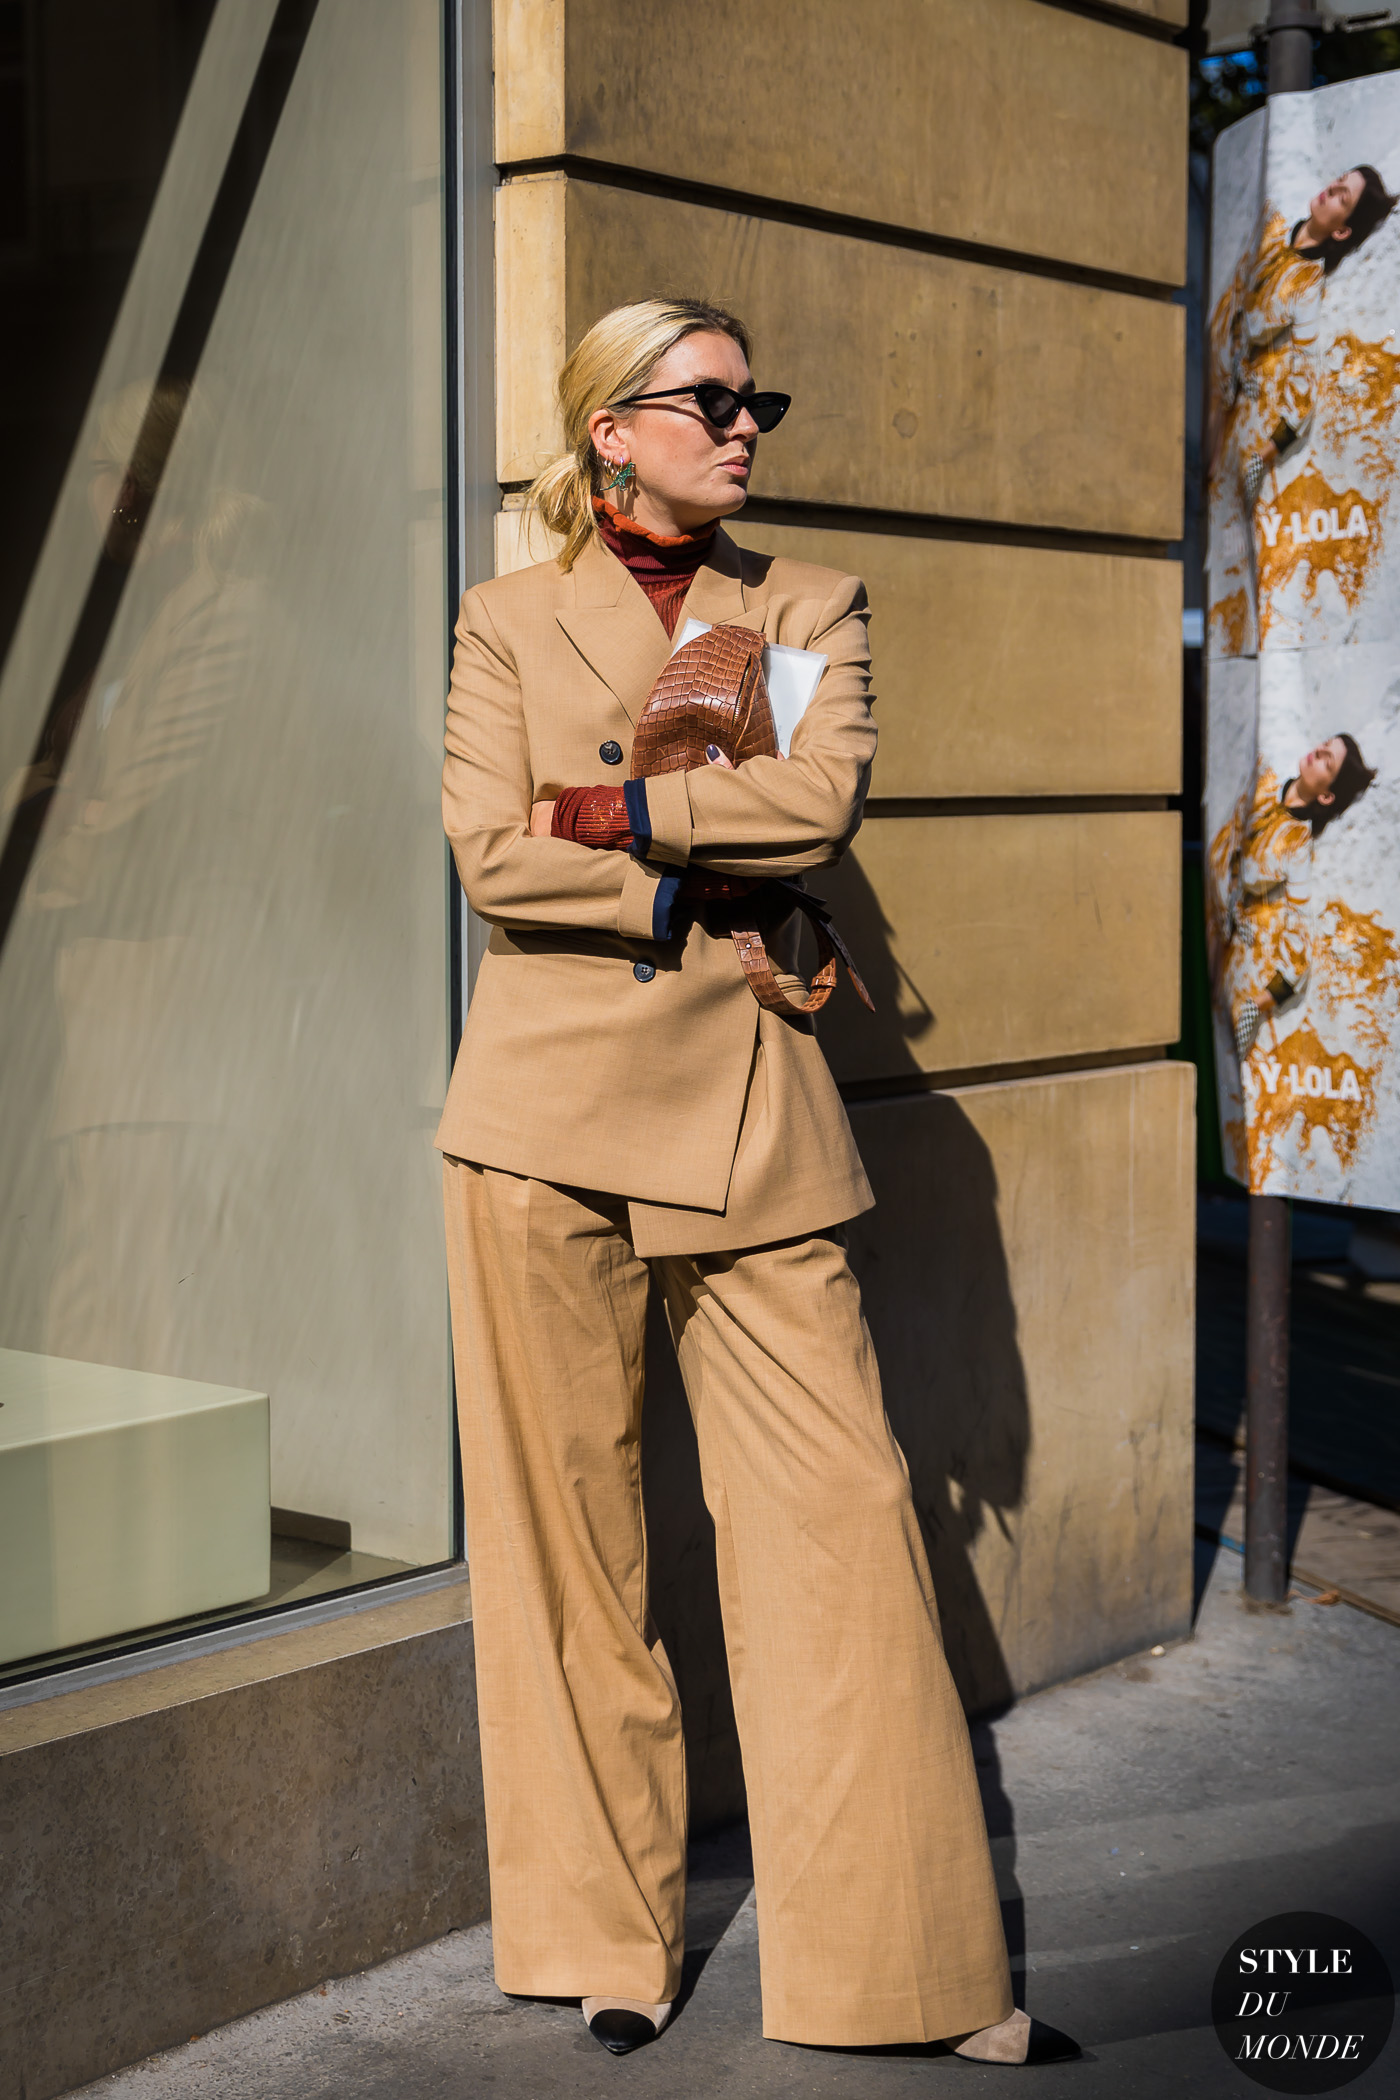 Camille Charriere by STYLEDUMONDE Street Style Fashion Photography_48A5396